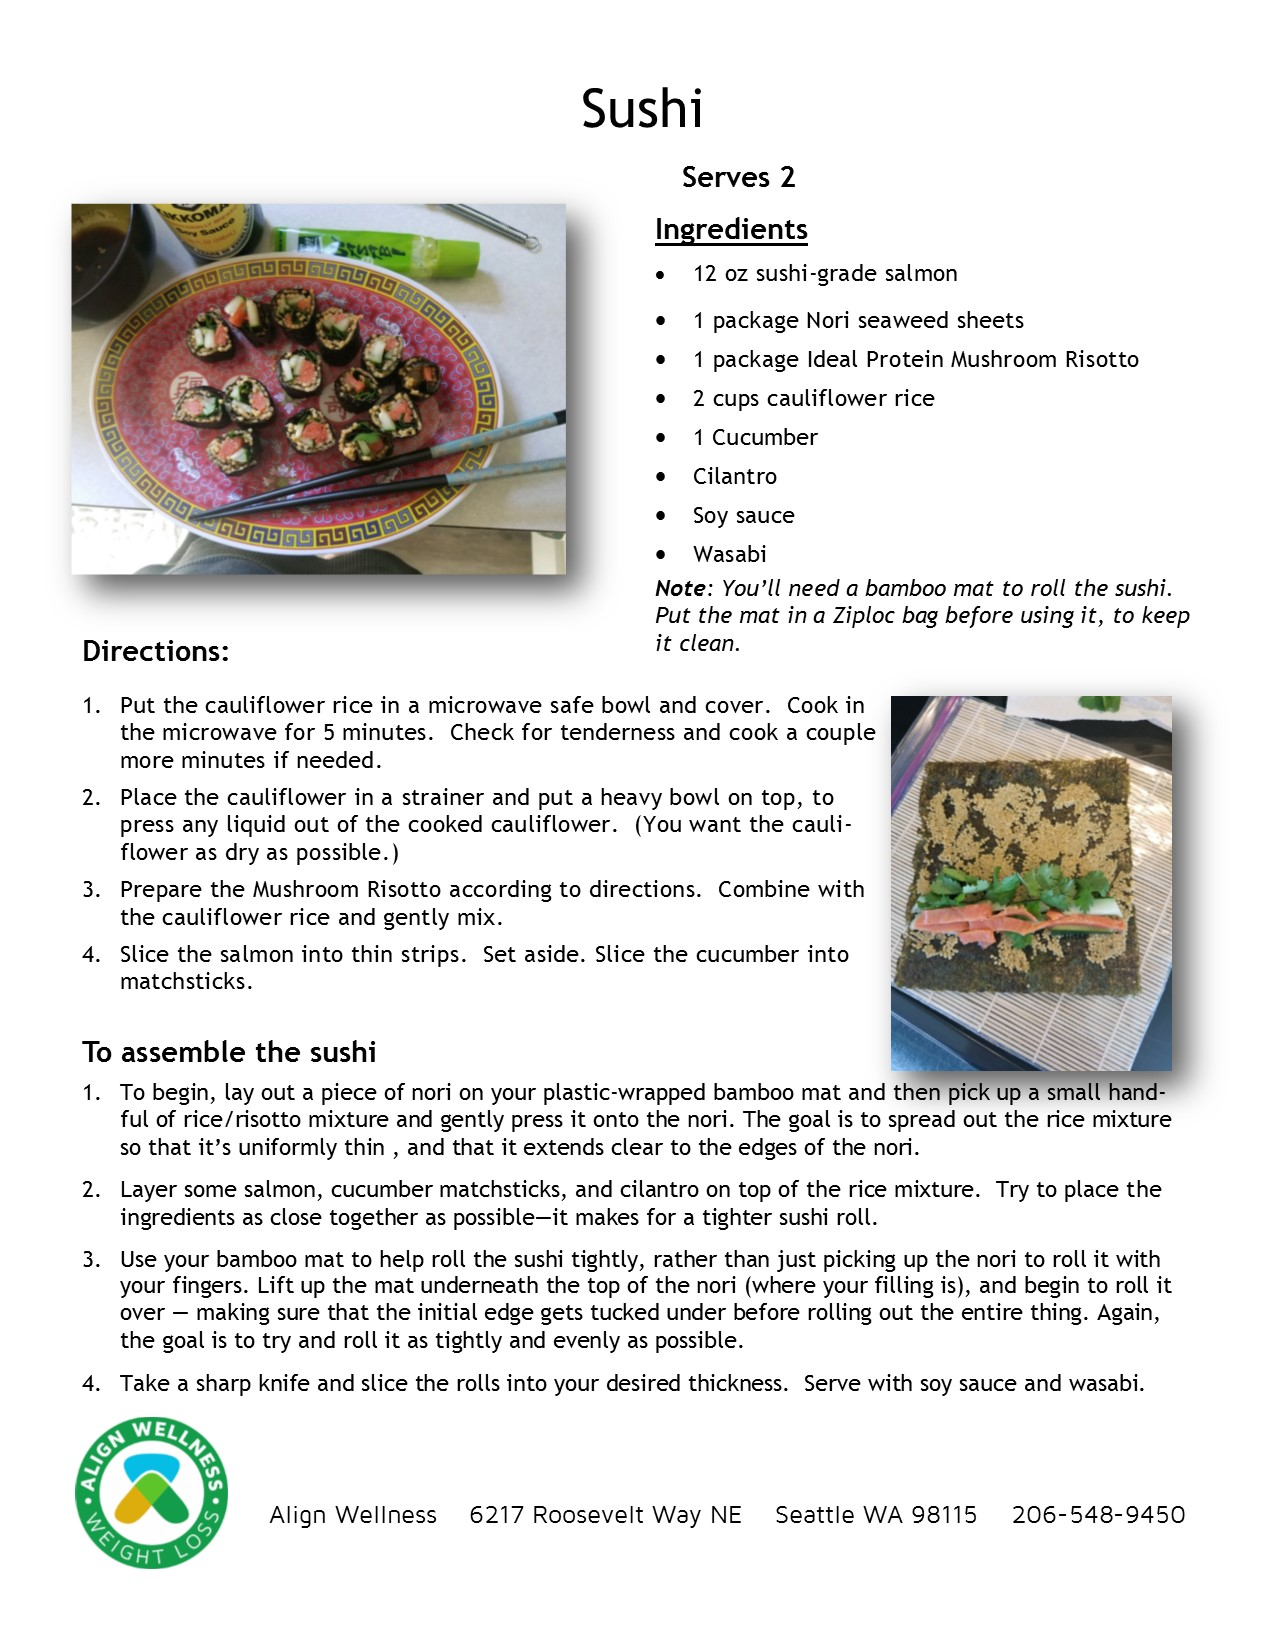 Sushi Ideal Protein Recipe